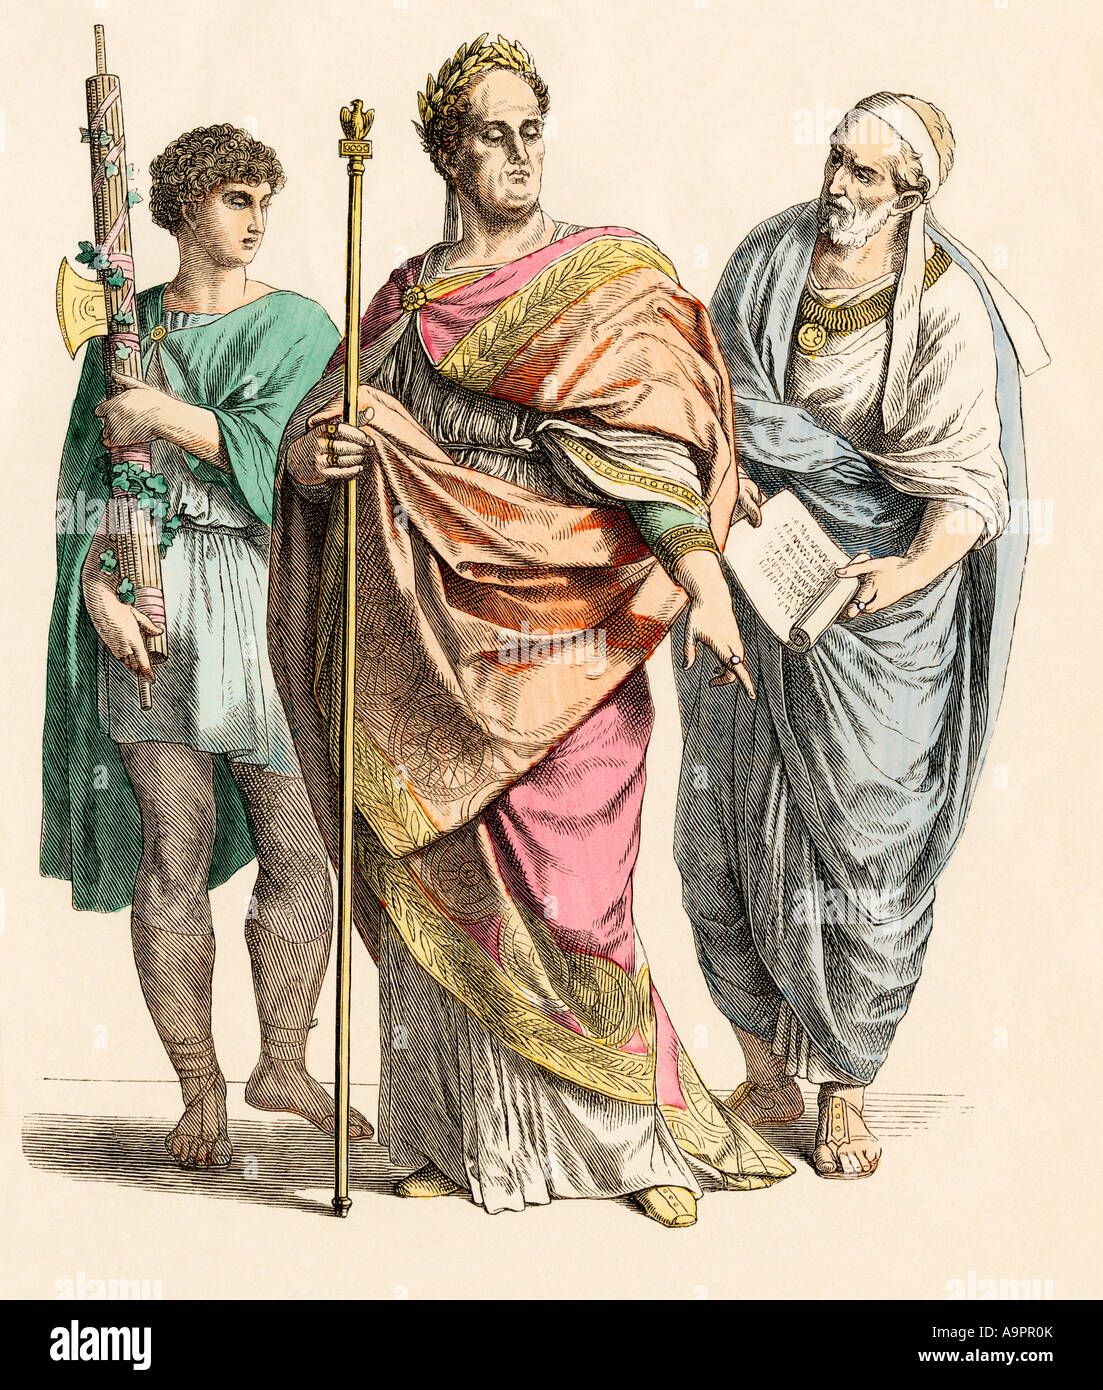 Roman emperor with lictor bearer and poet. Hand-colored print - Stock Image